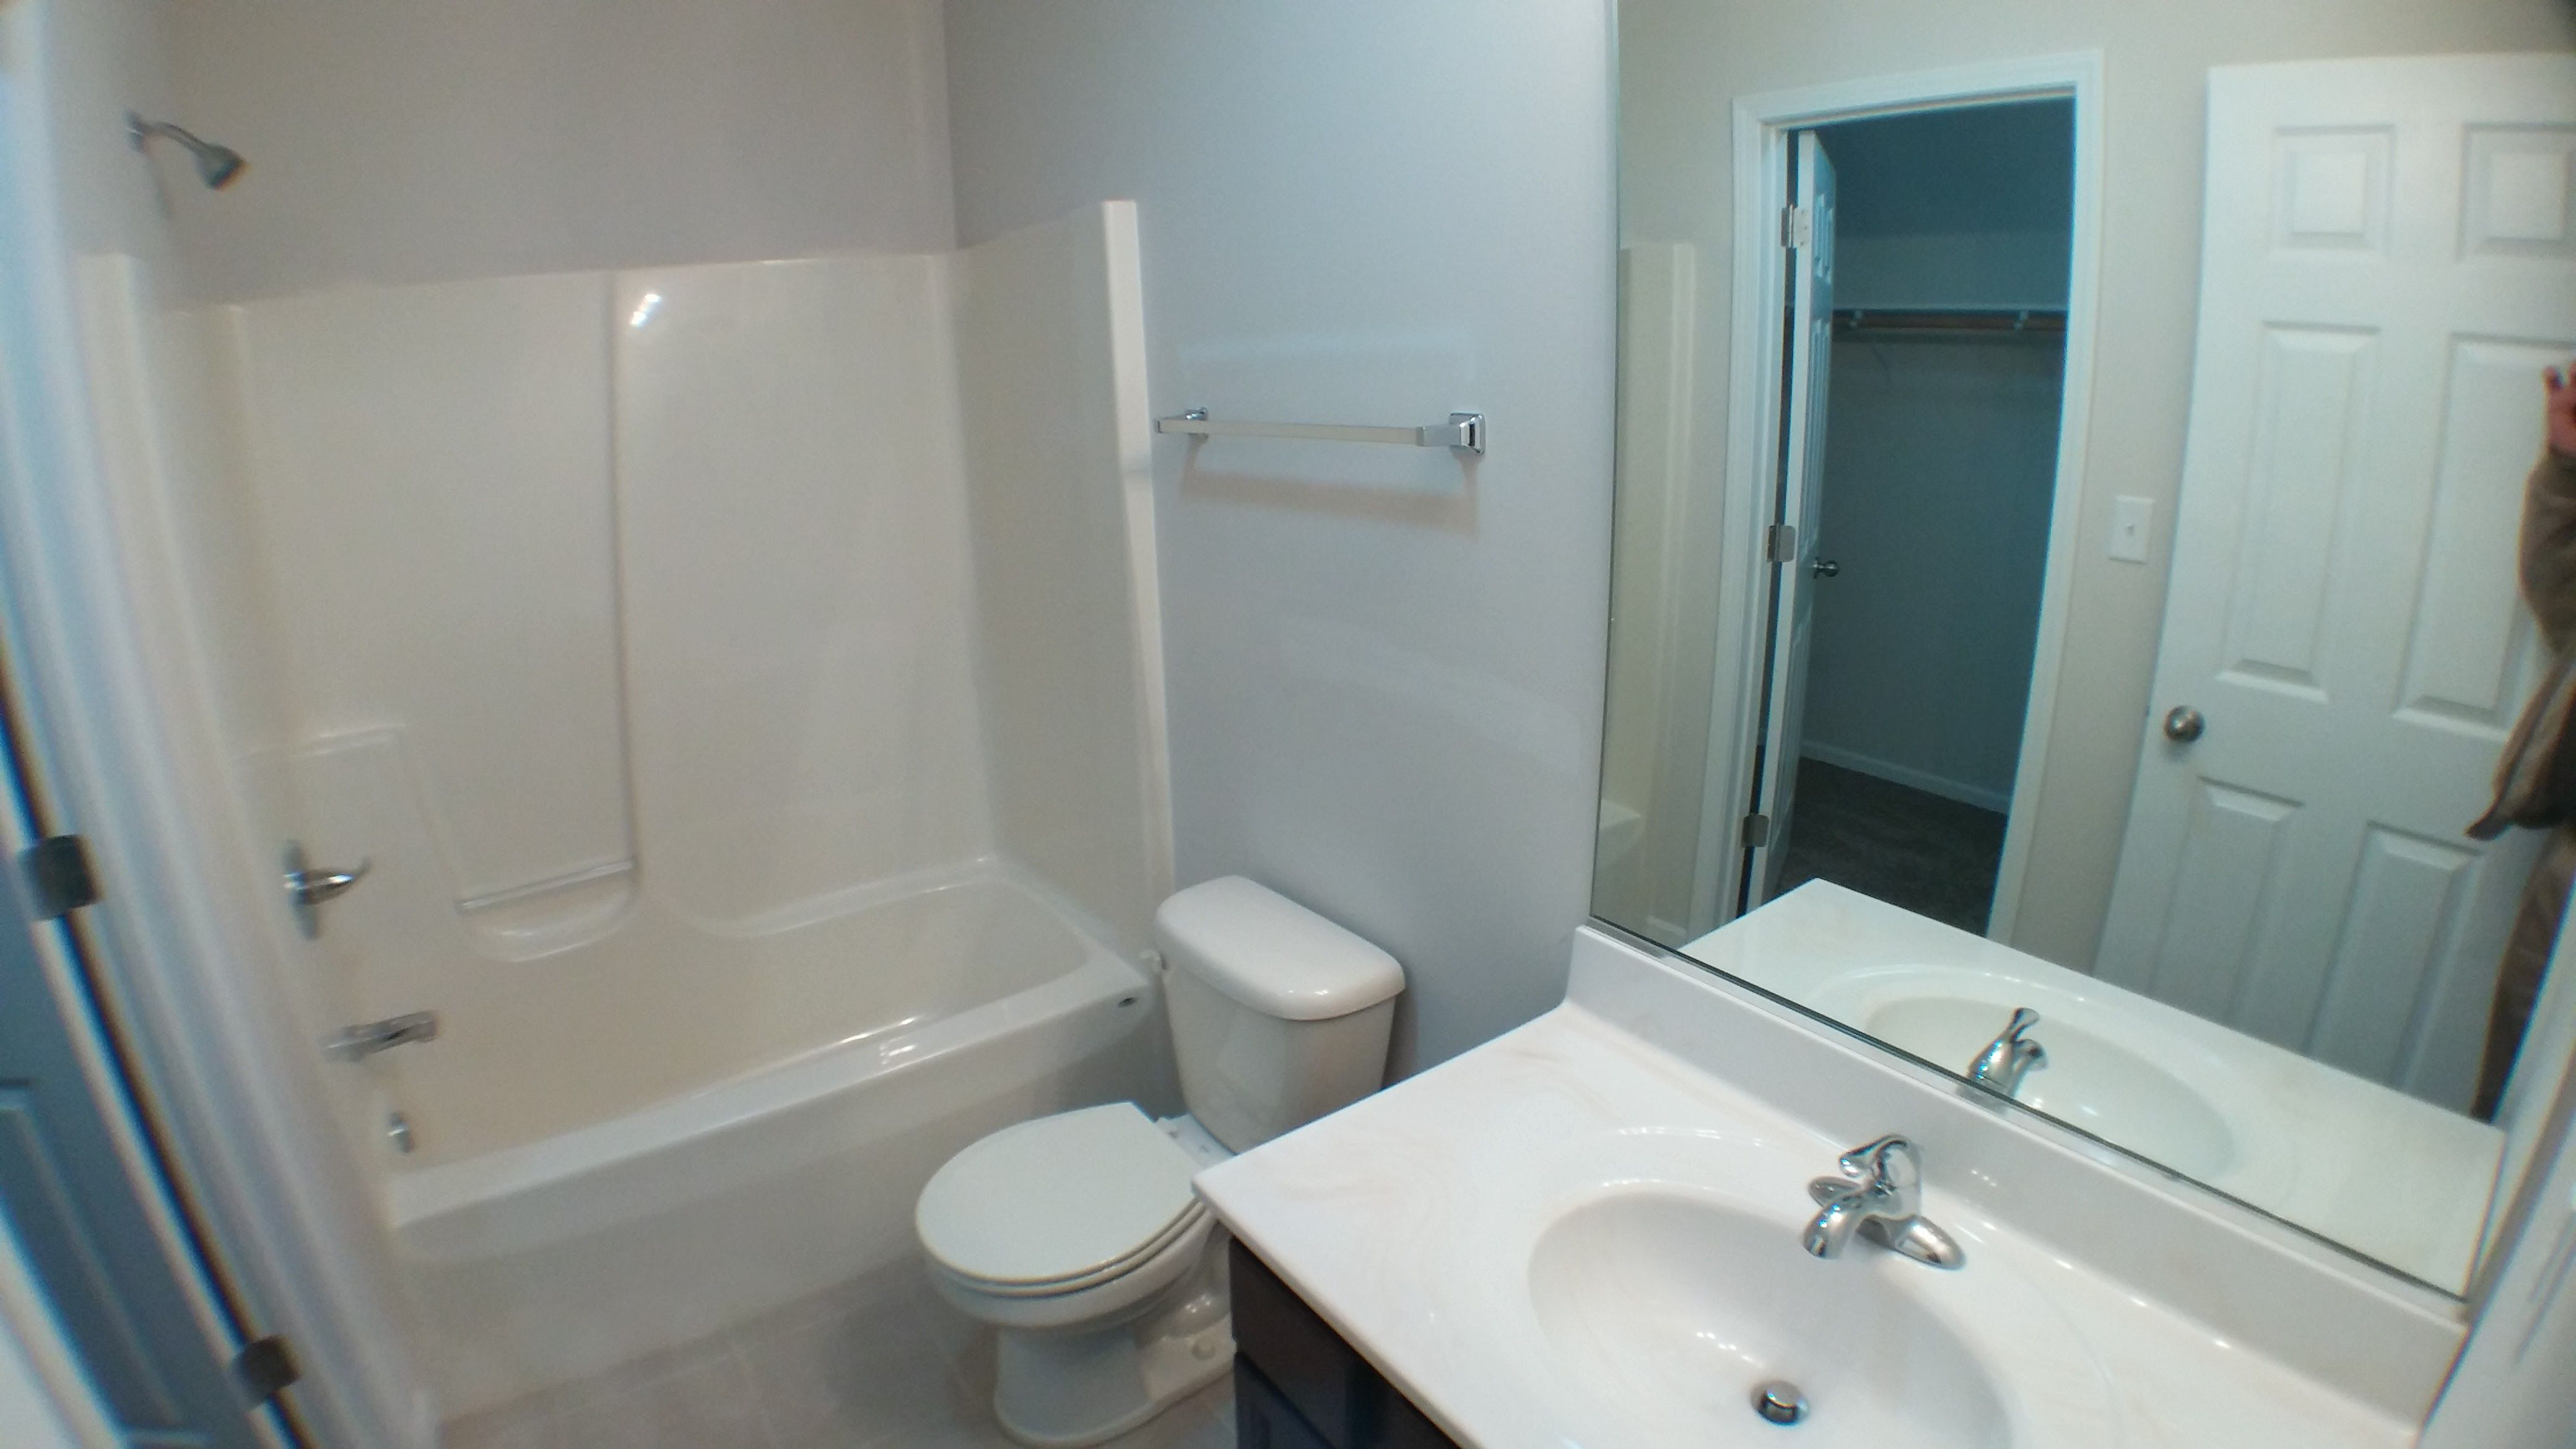 Bathroom featured in the Lexington II By Accent Homes Inc. in Gary, IN